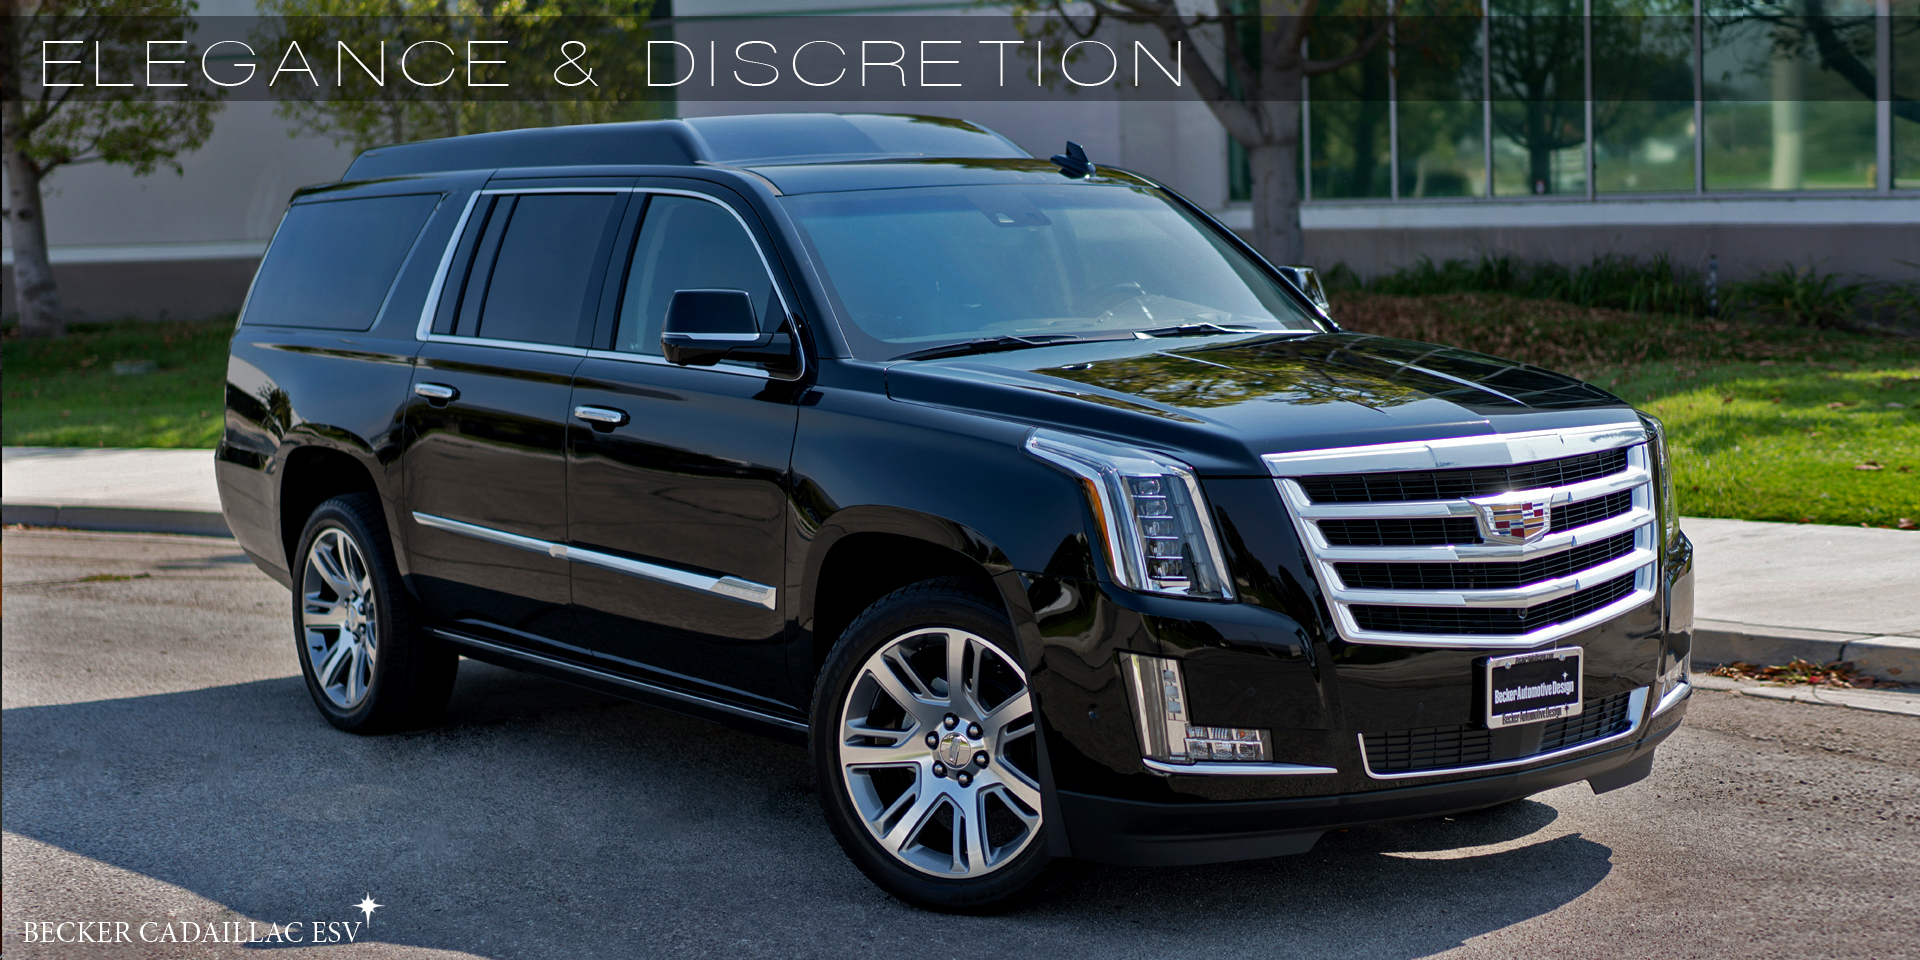 Becker Automotive Design // Luxury Transport Coaches // Sprinter Van and Cadillac ESV Conversions